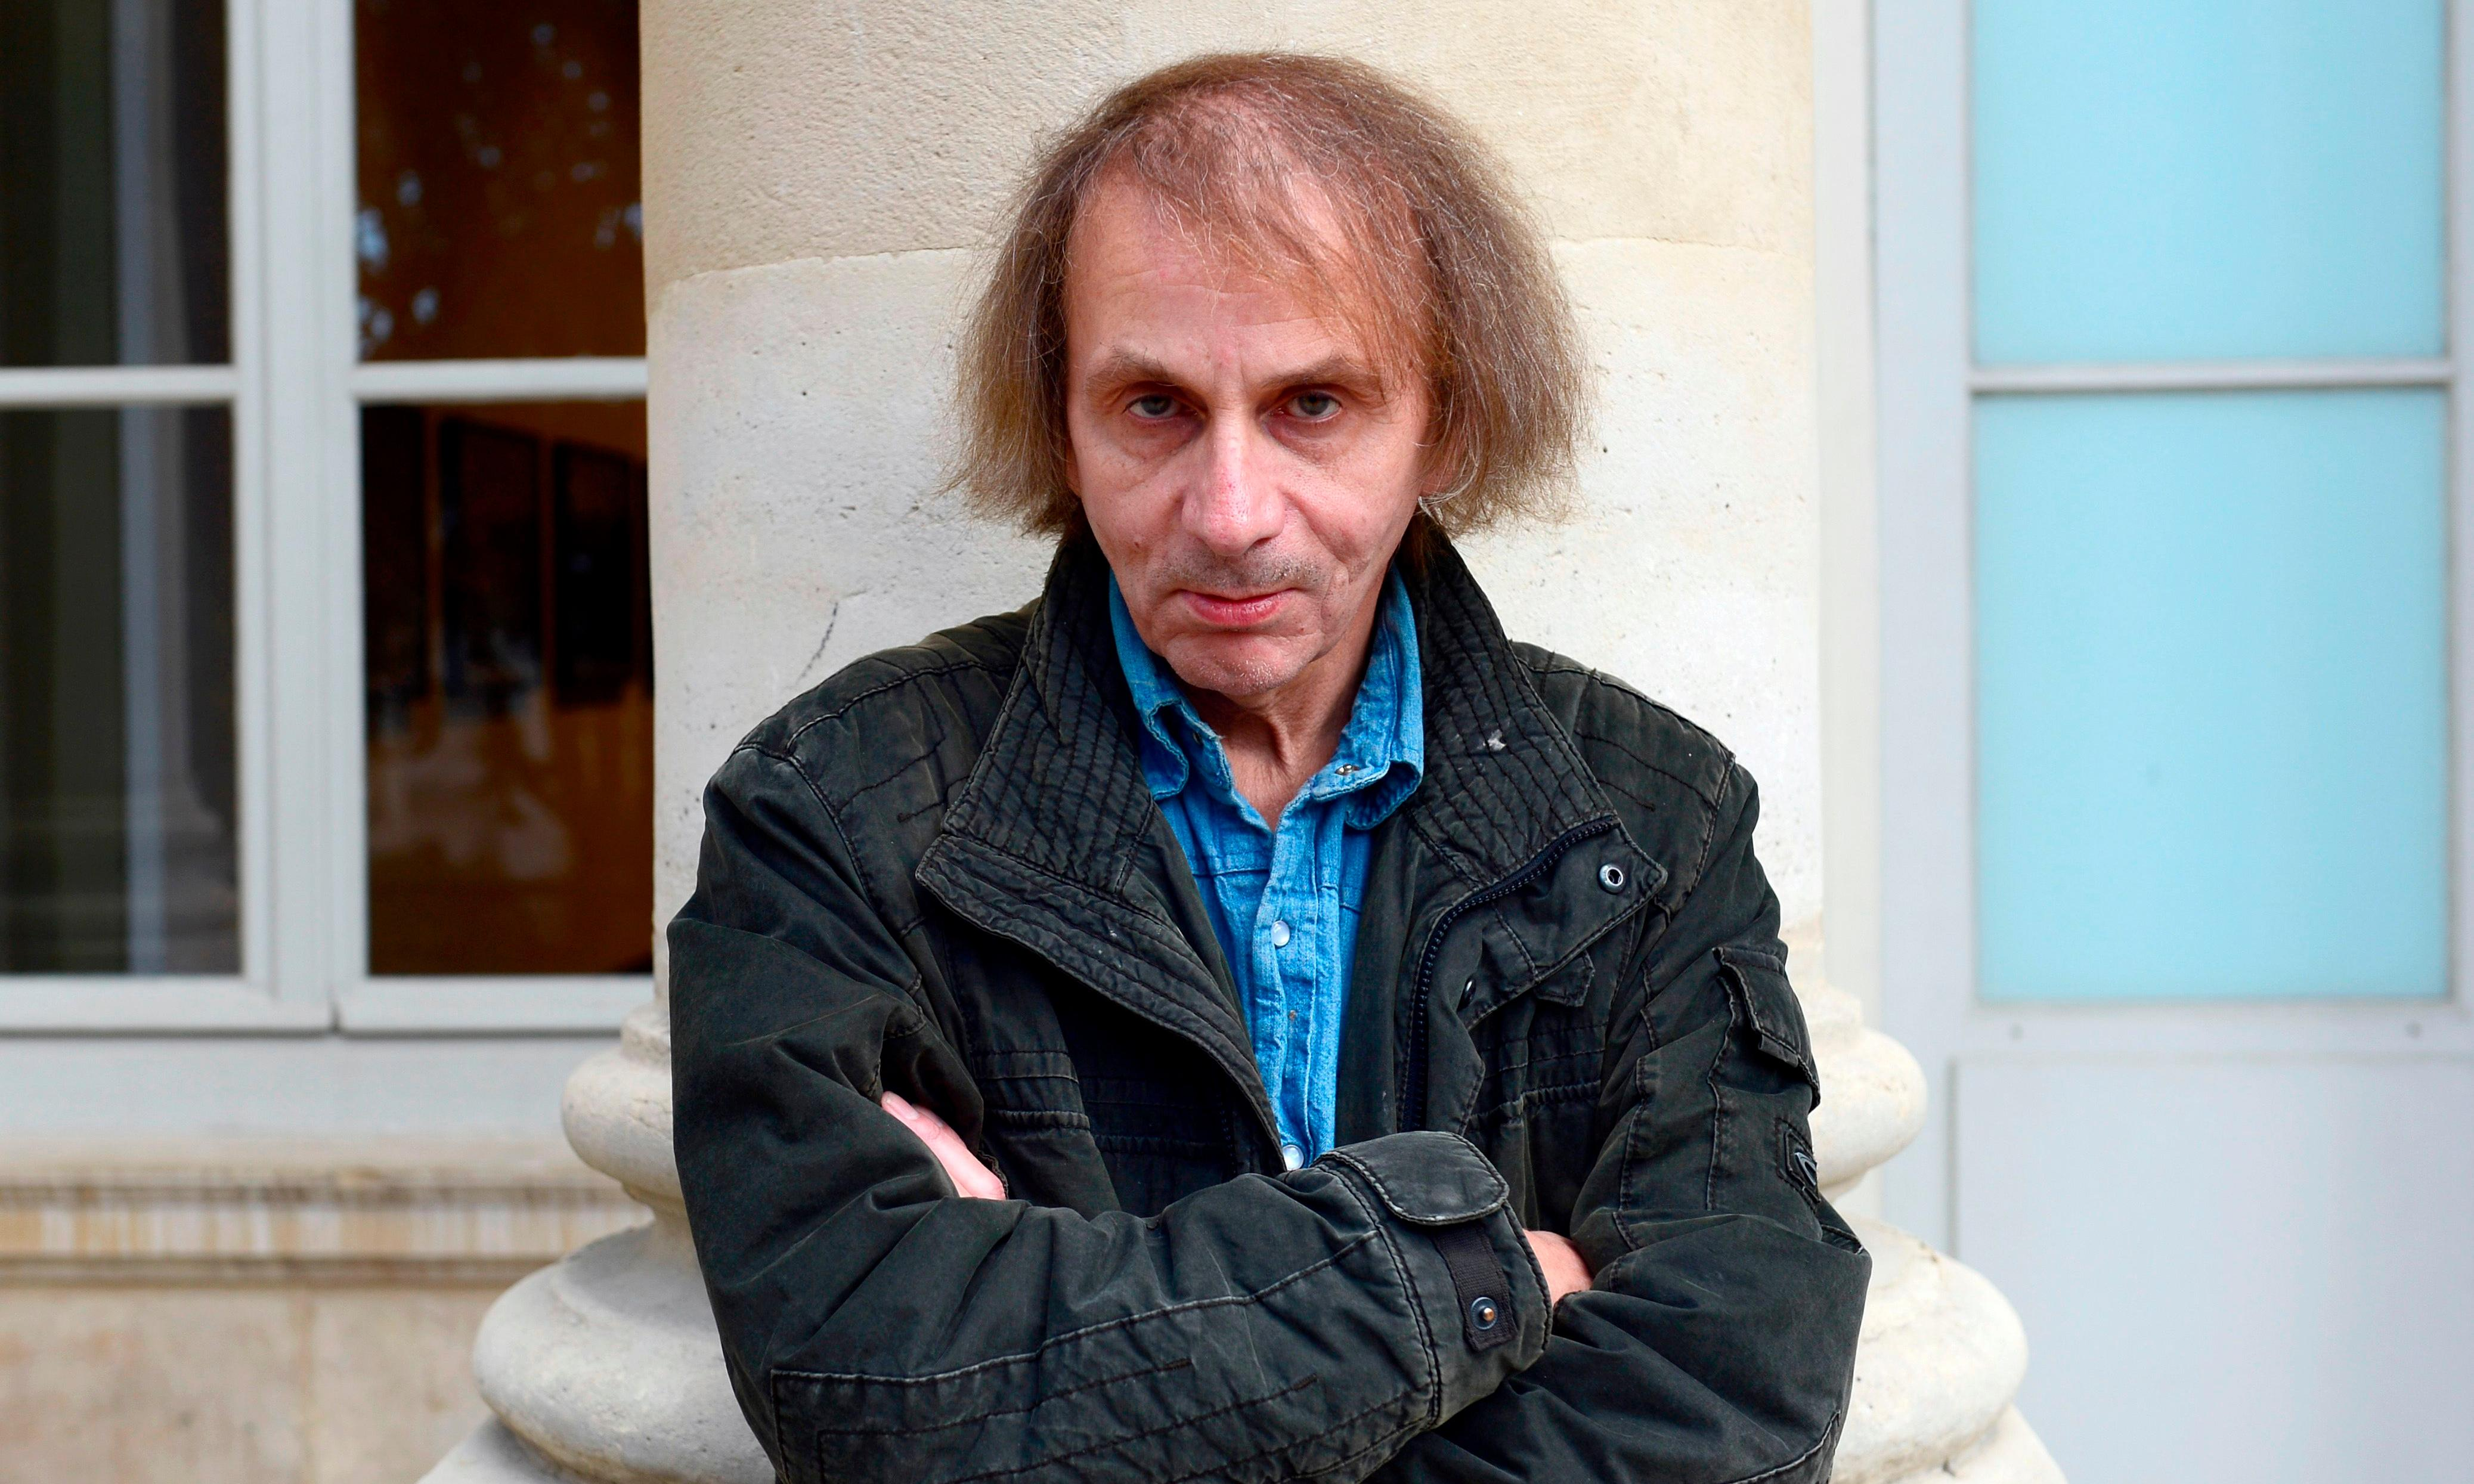 Serotonin by Michel Houellebecq review – a vision of degraded masculinity